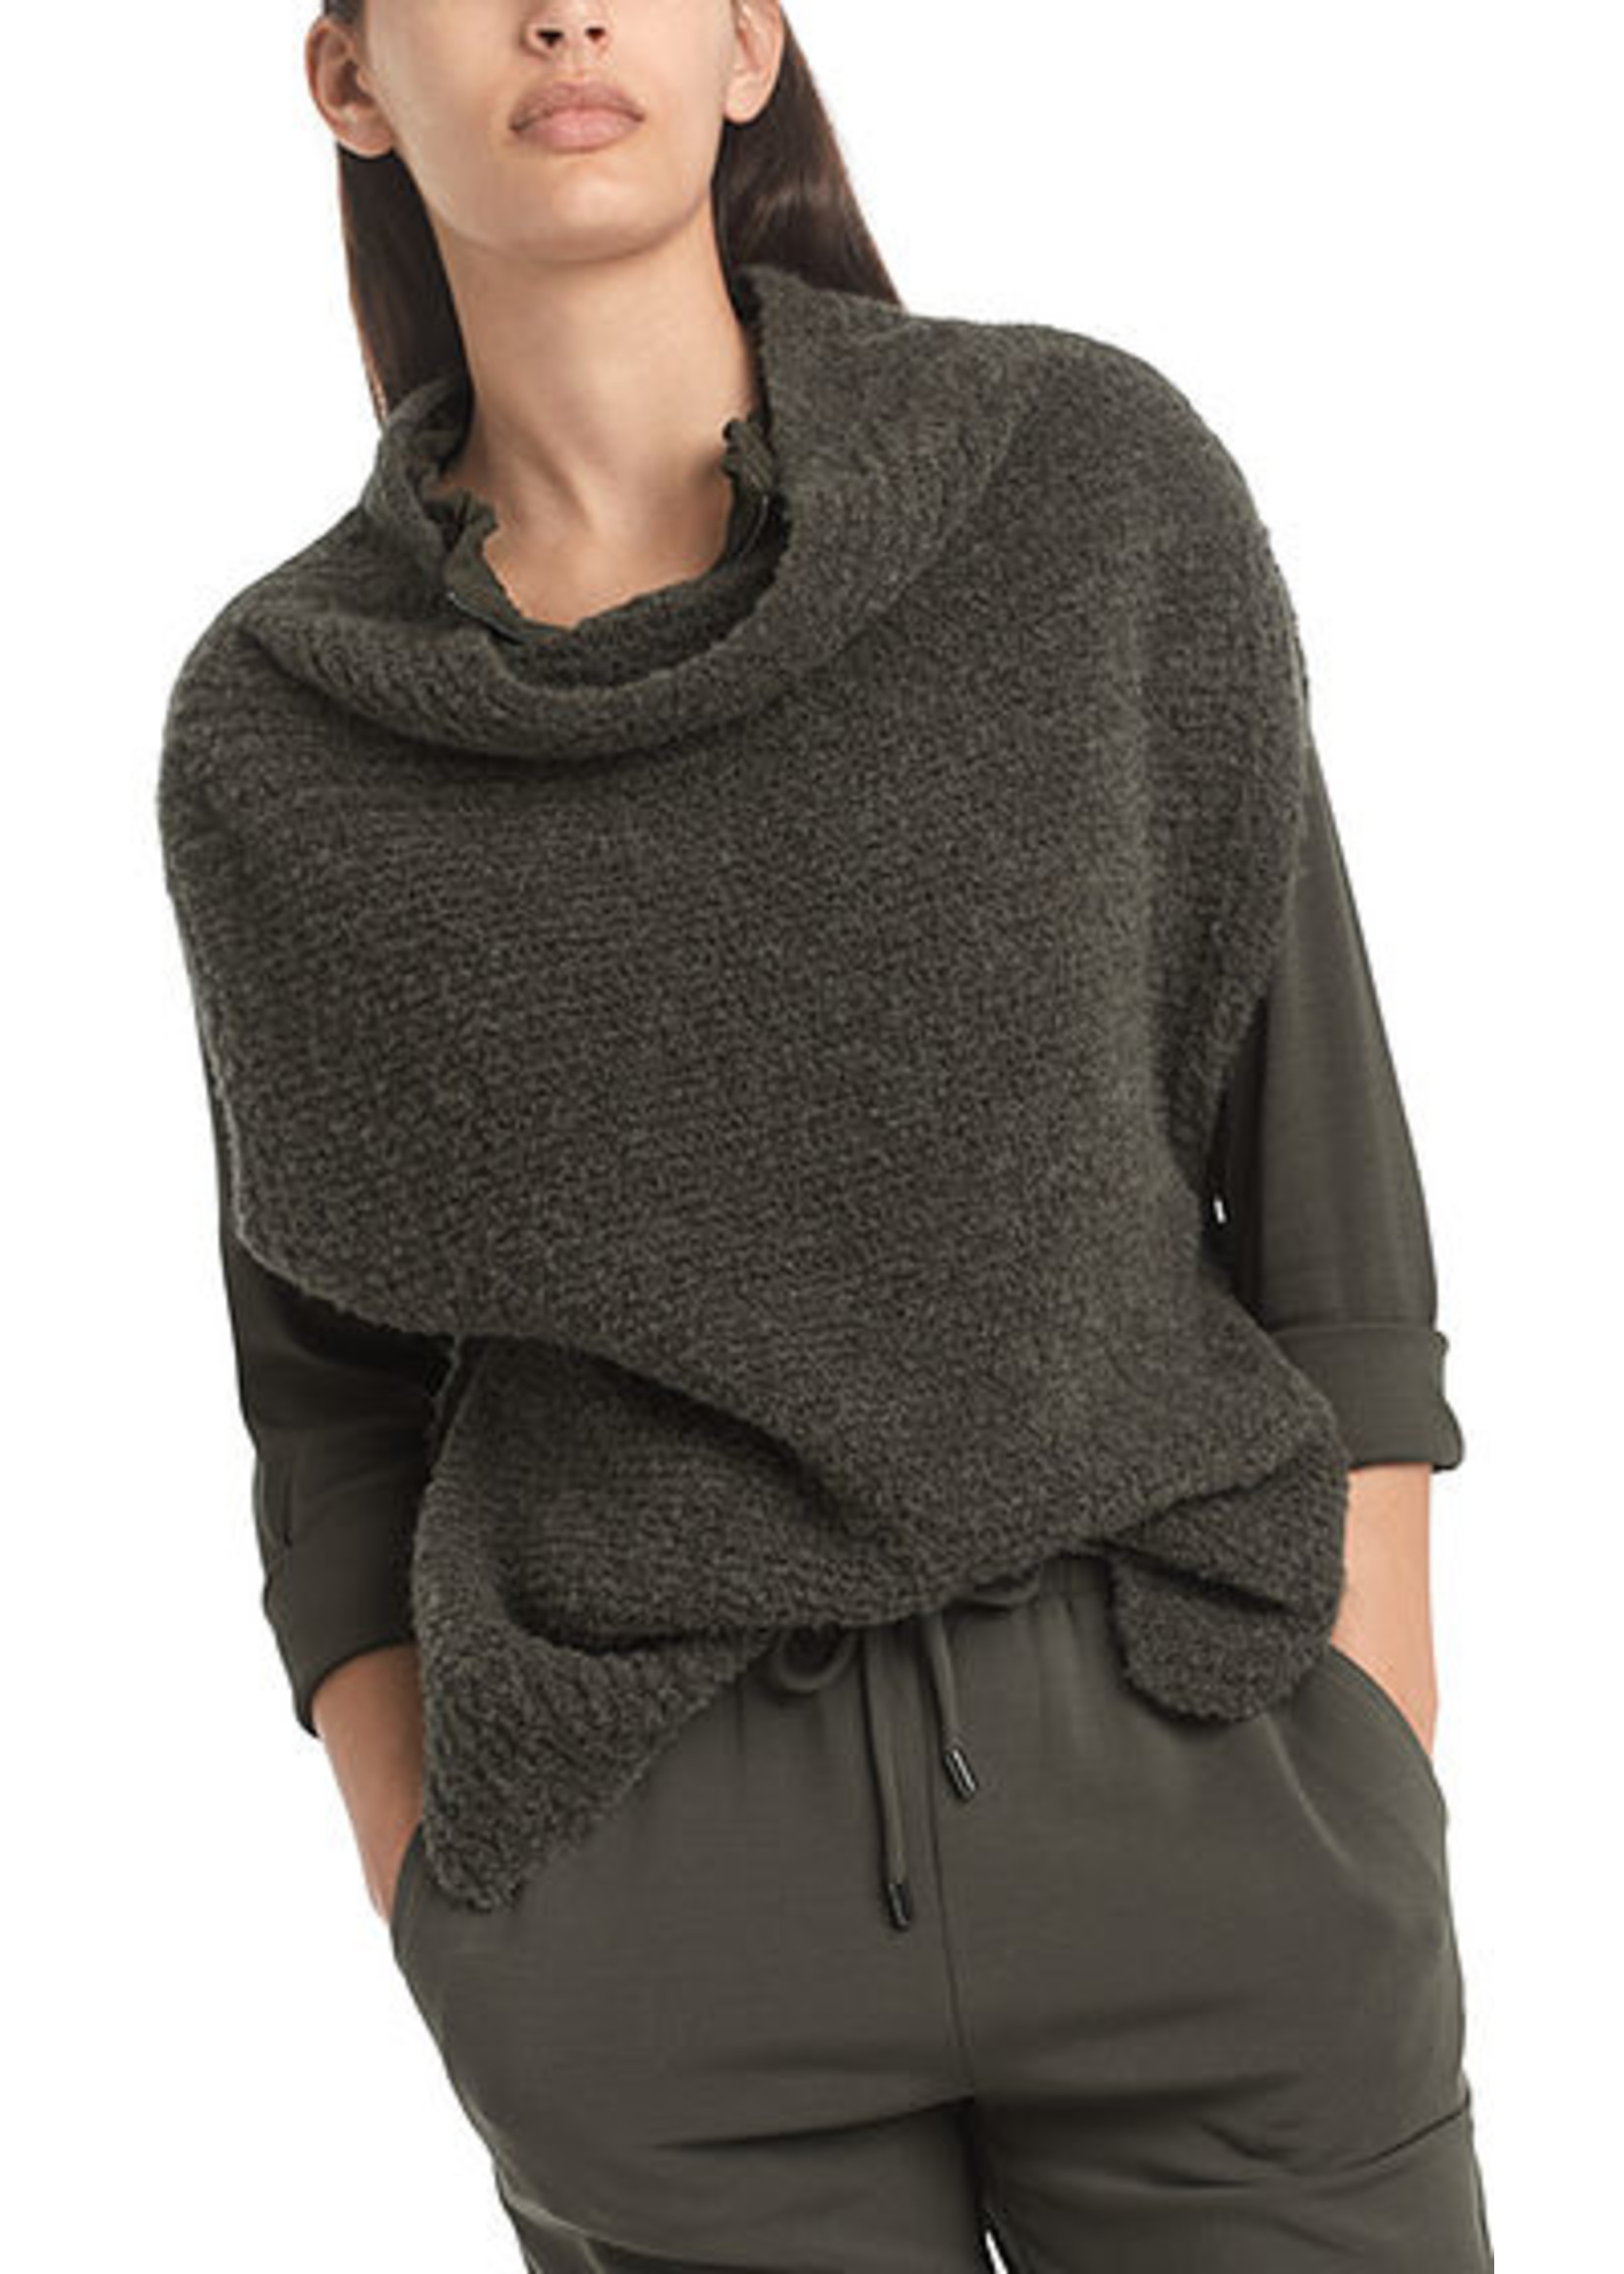 Marccain Sports Top RS 61.13 M23 olive drab